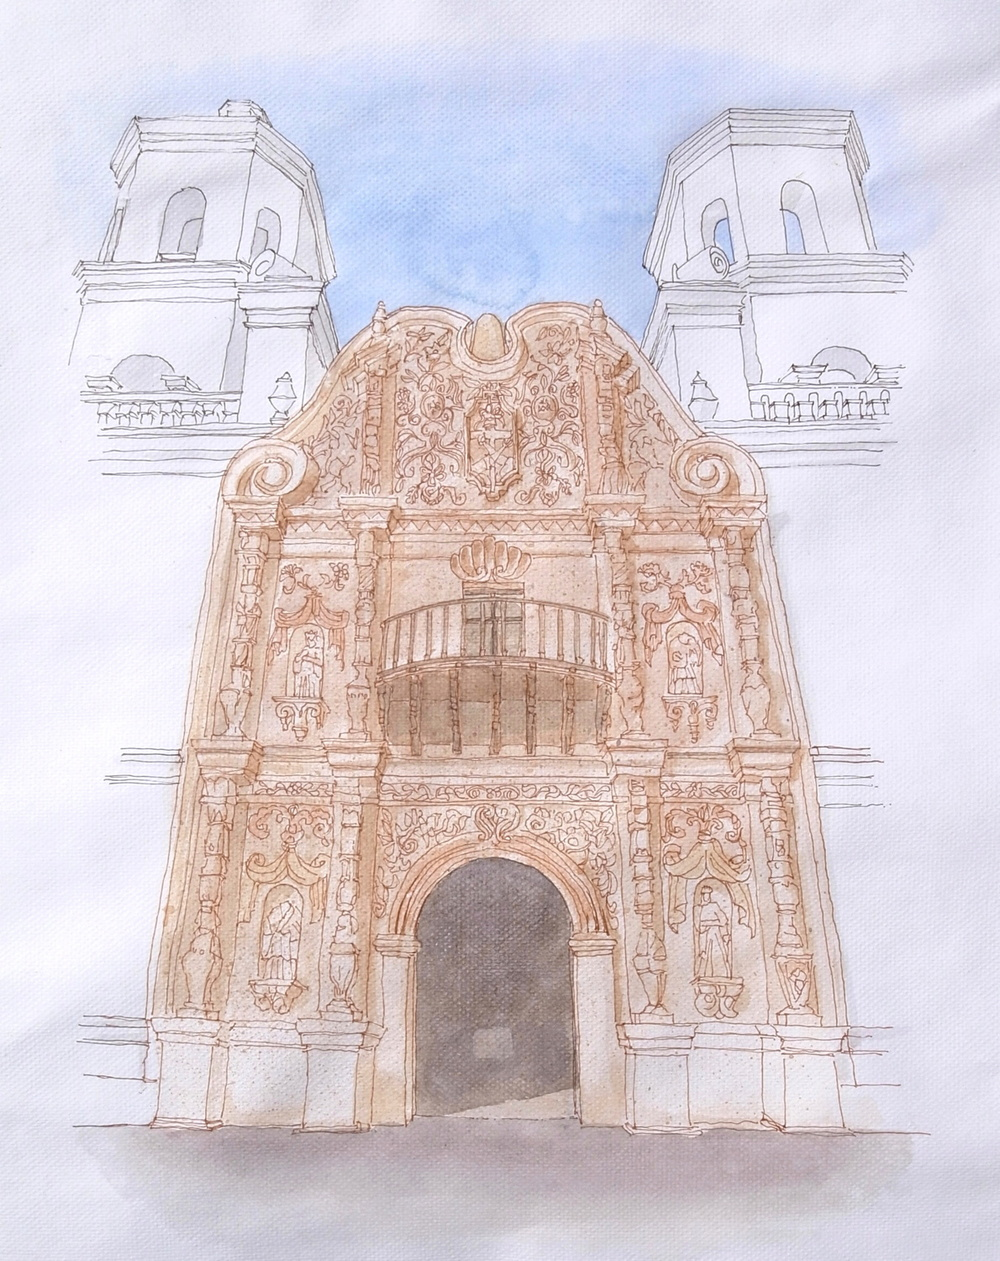 San Xavier del Bac façade (ink & watercolor)